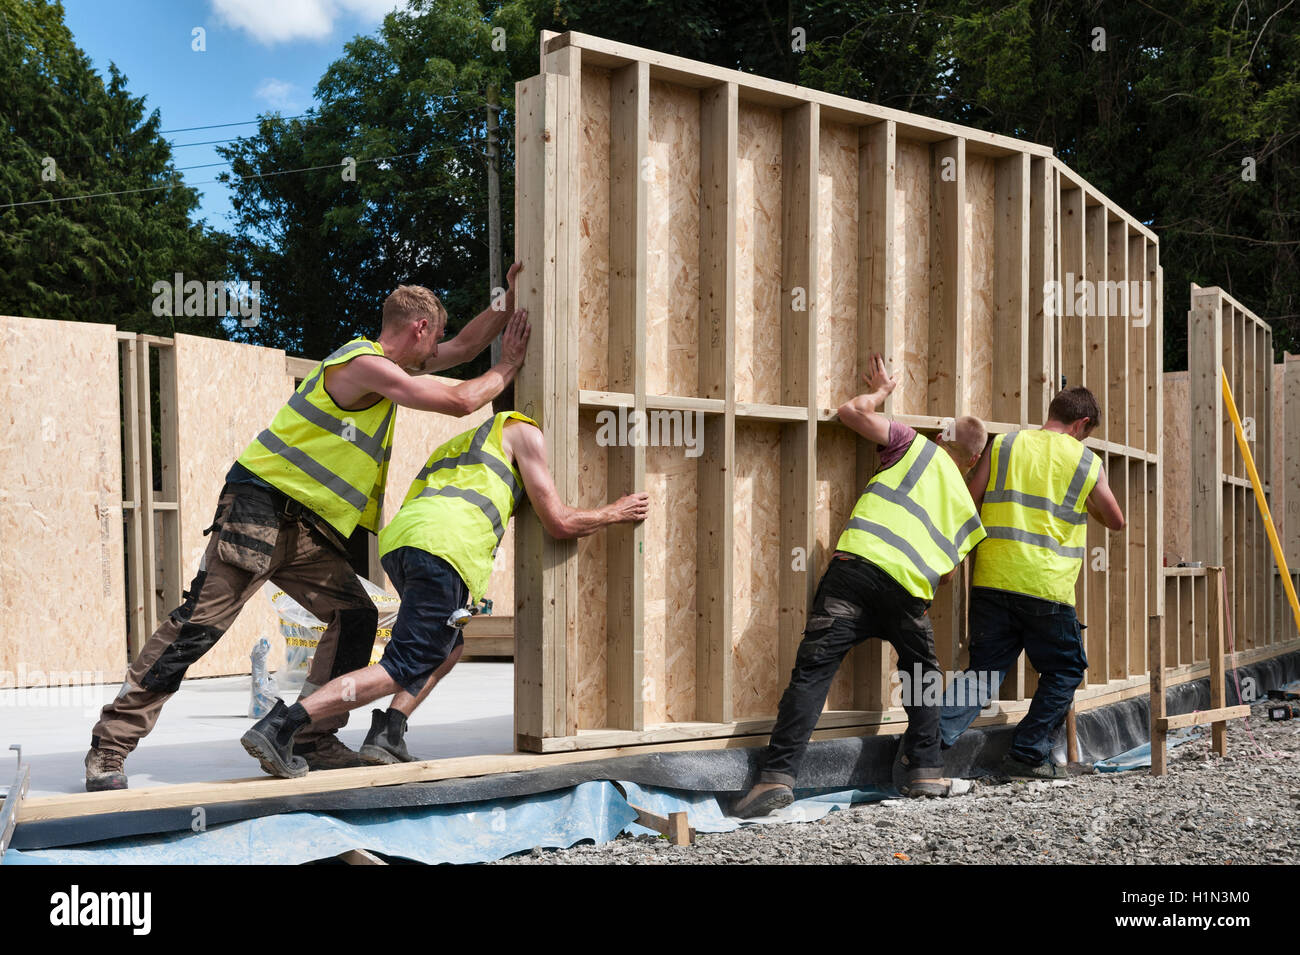 Housebuilding, UK. Builders installing a prefabricated timber wall panel as part of a new house - Stock Image